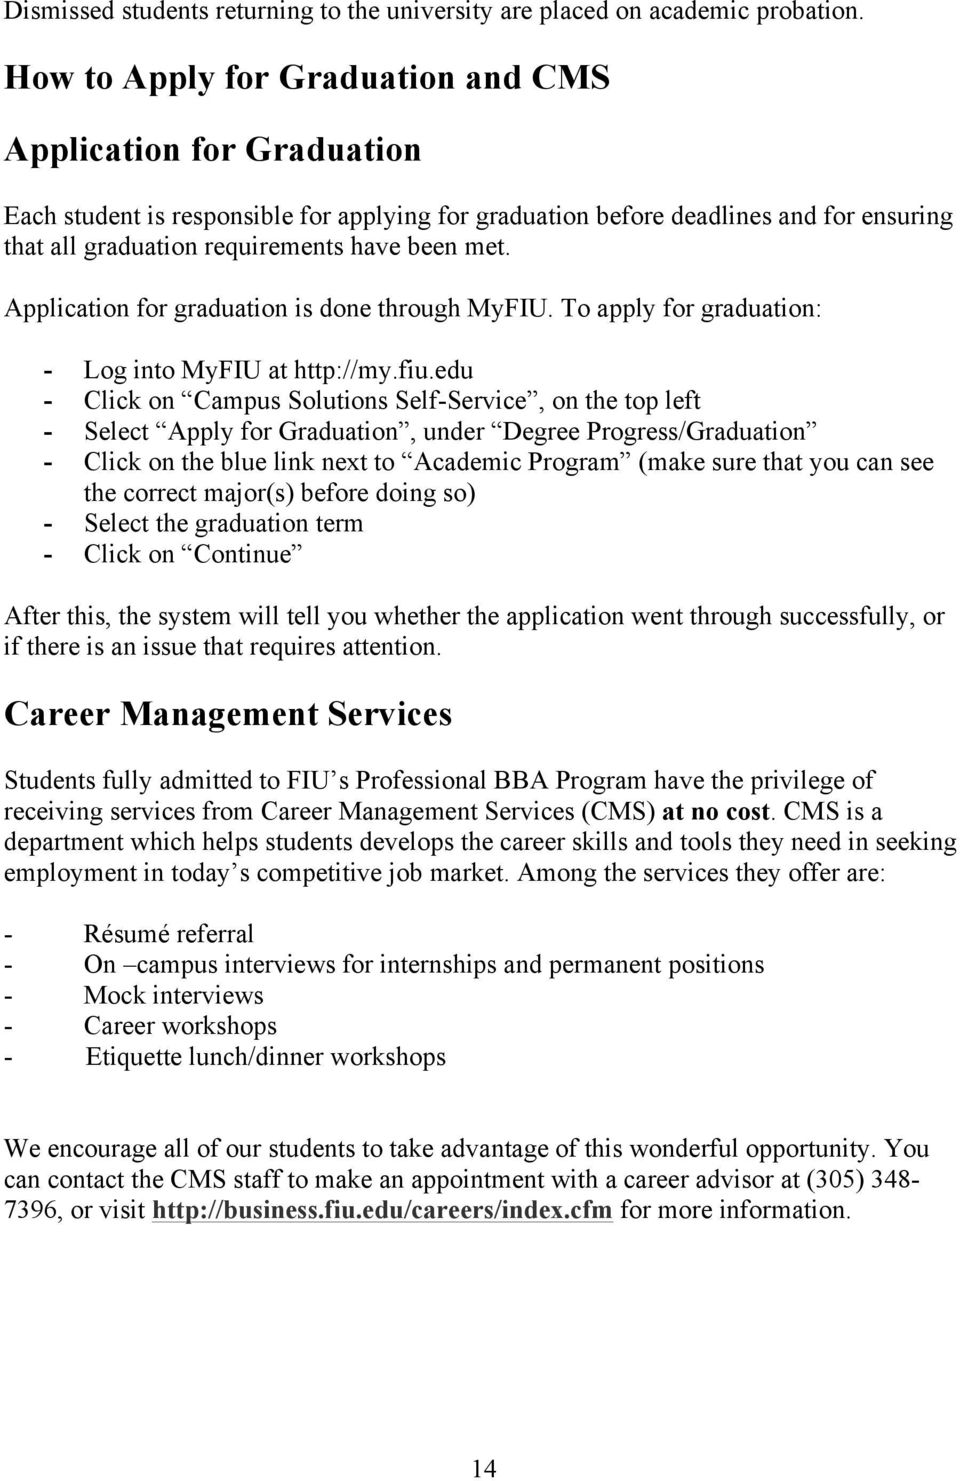 Application for graduation is done through MyFIU. To apply for graduation: - Log into MyFIU at http://my.fiu.